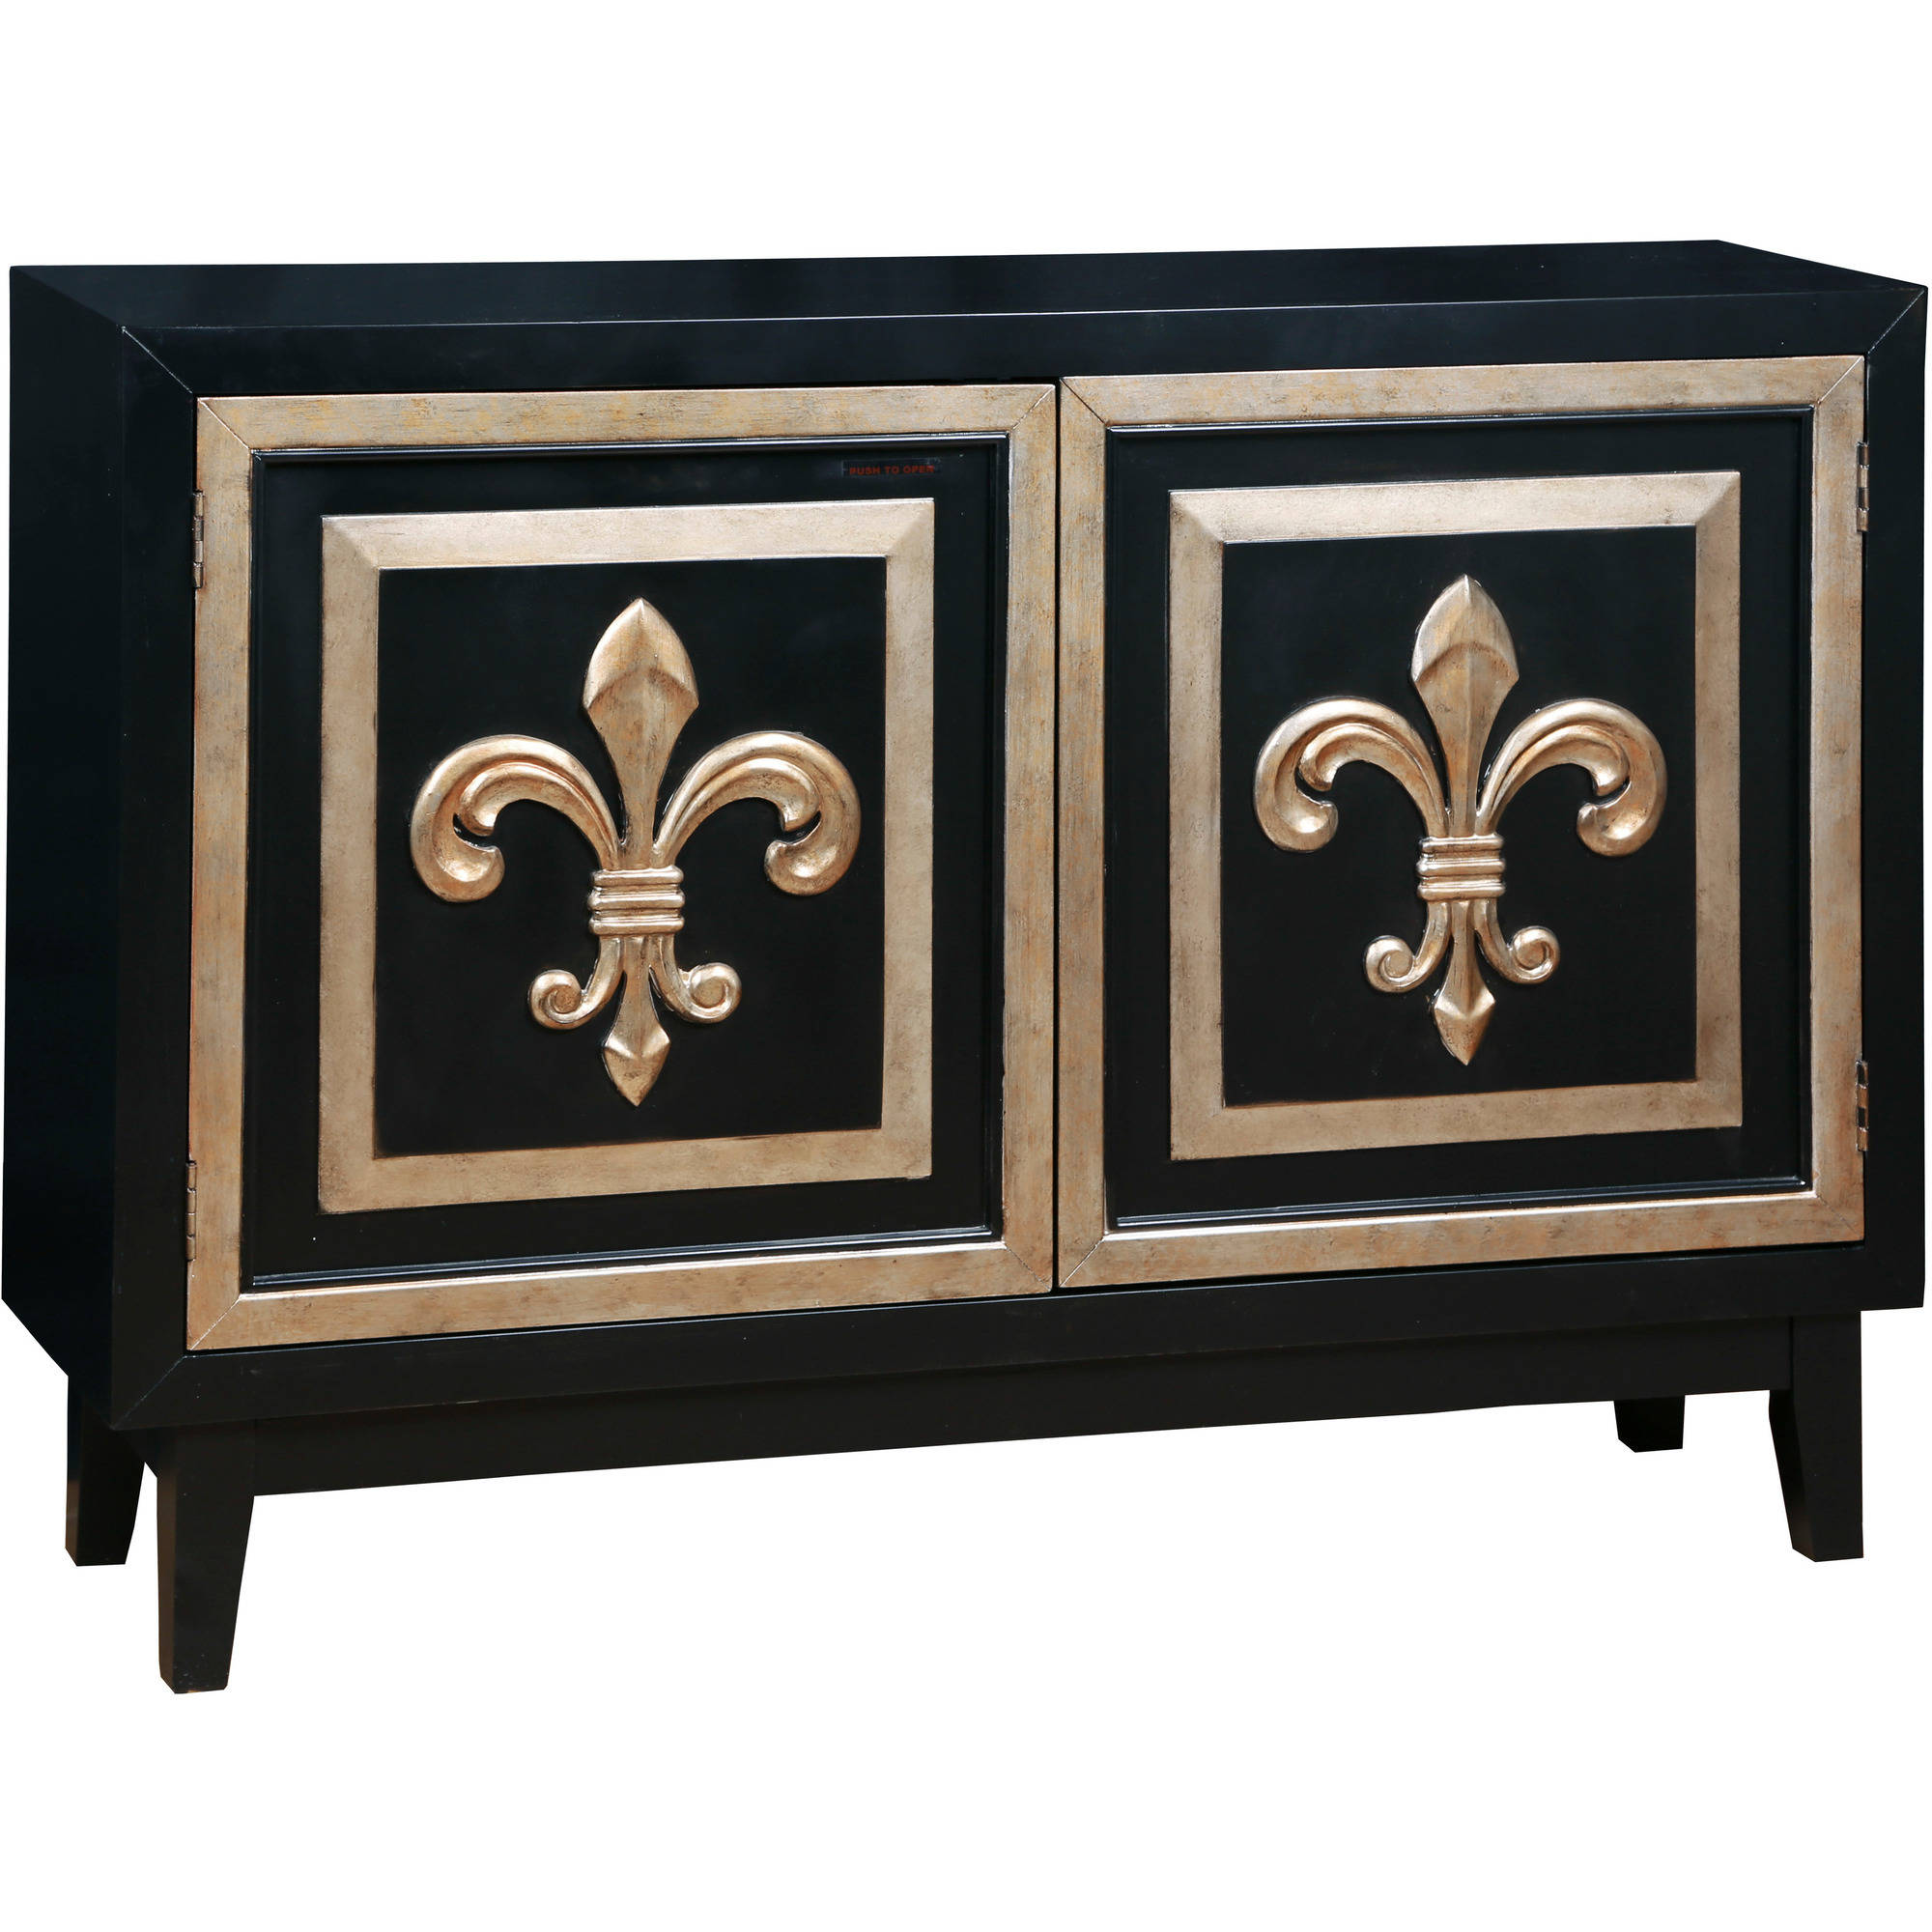 Black and Gold Fluer di Lis Credenza by